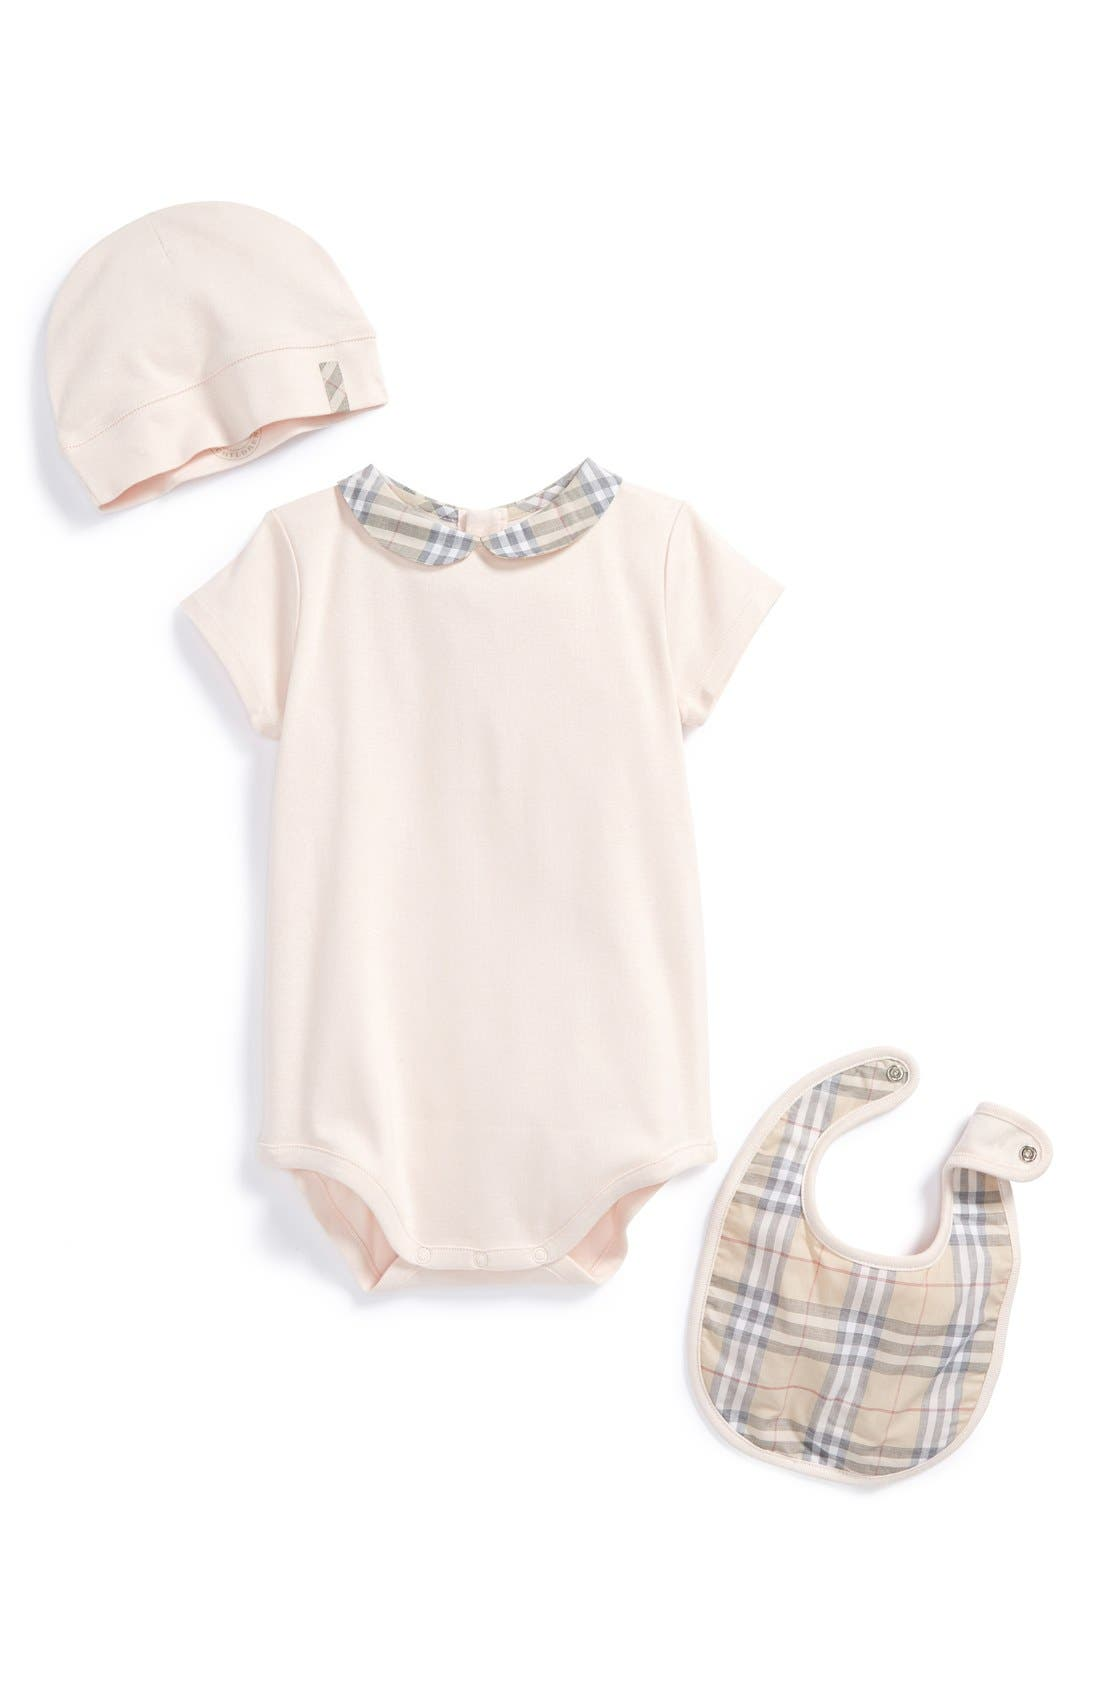 Cotton Three-Piece Baby Gift Set, Main, color, 681